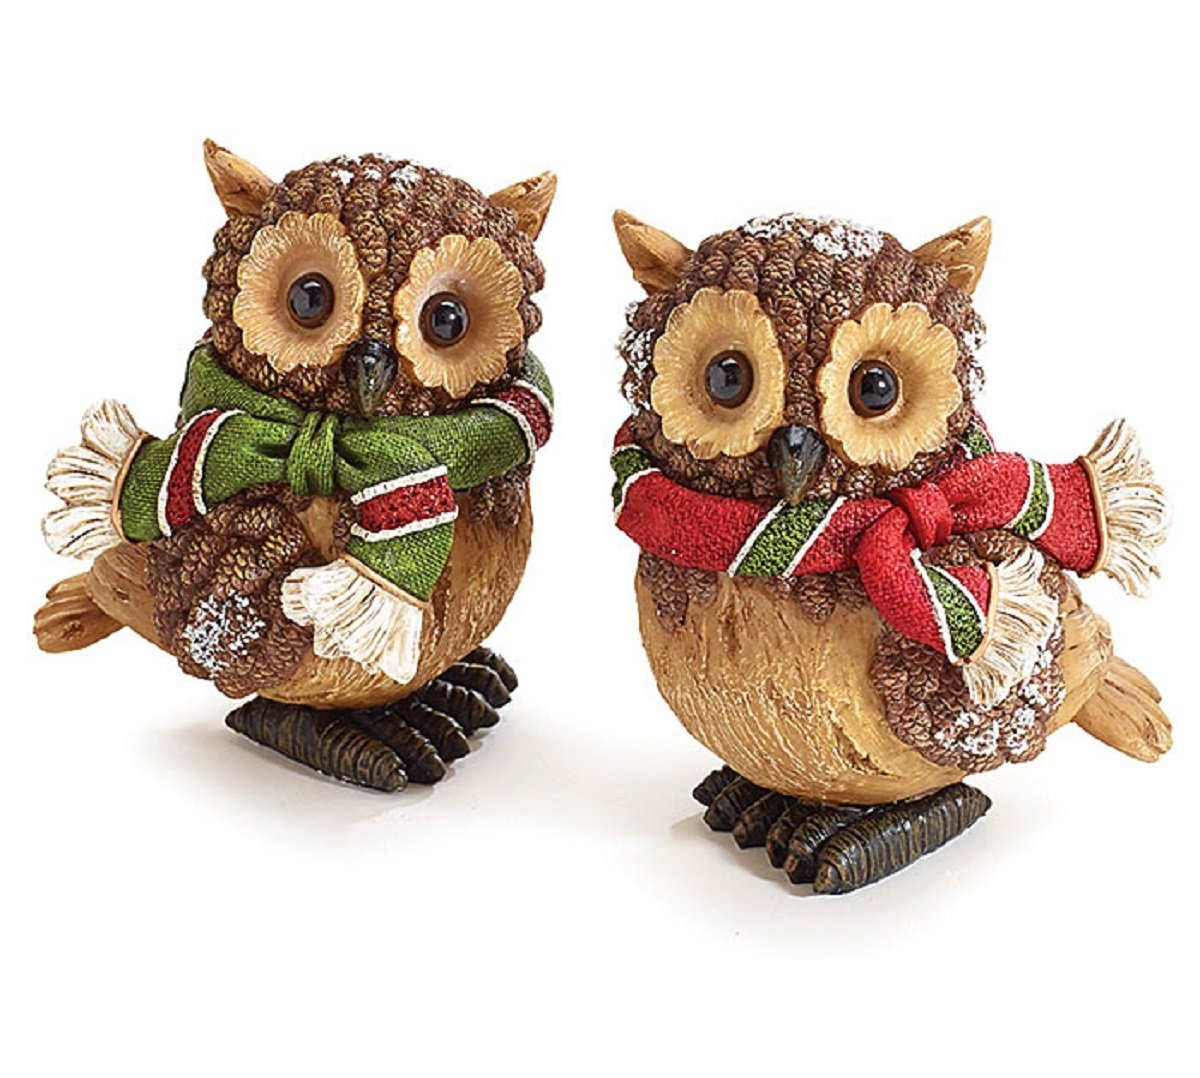 Set of 2 Christmas Snow Owl Figurines Adorable Holiday Home Decor